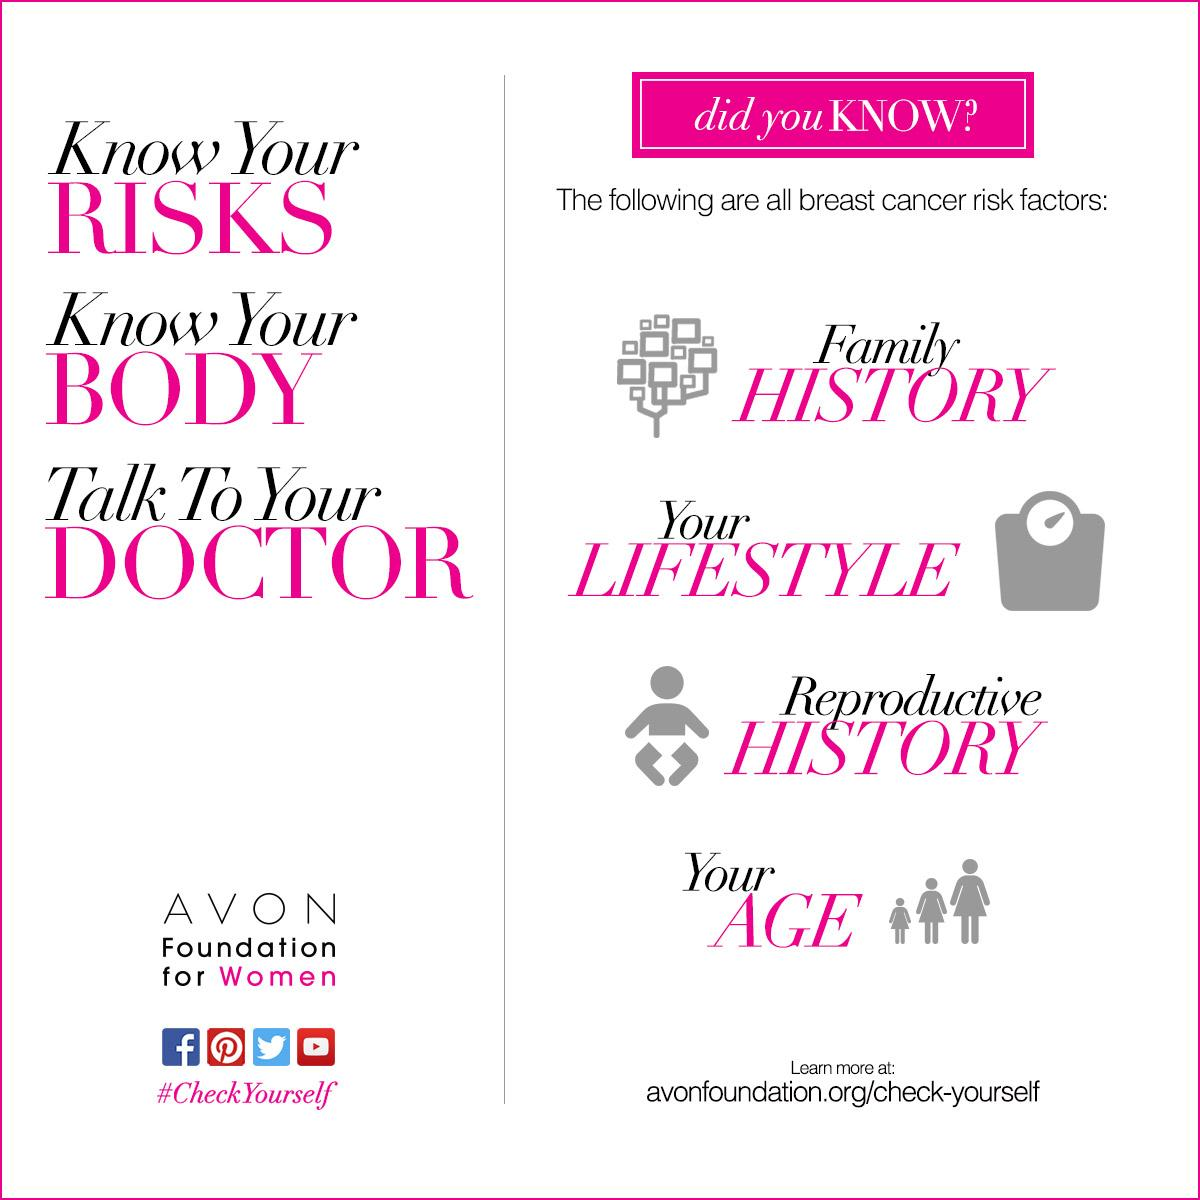 RT @avonfoundation: Let #WorldCancerDay serve as a reminder to #CheckYourself & take action for your #breasthealth http://t.co/vYkMRM867I h…